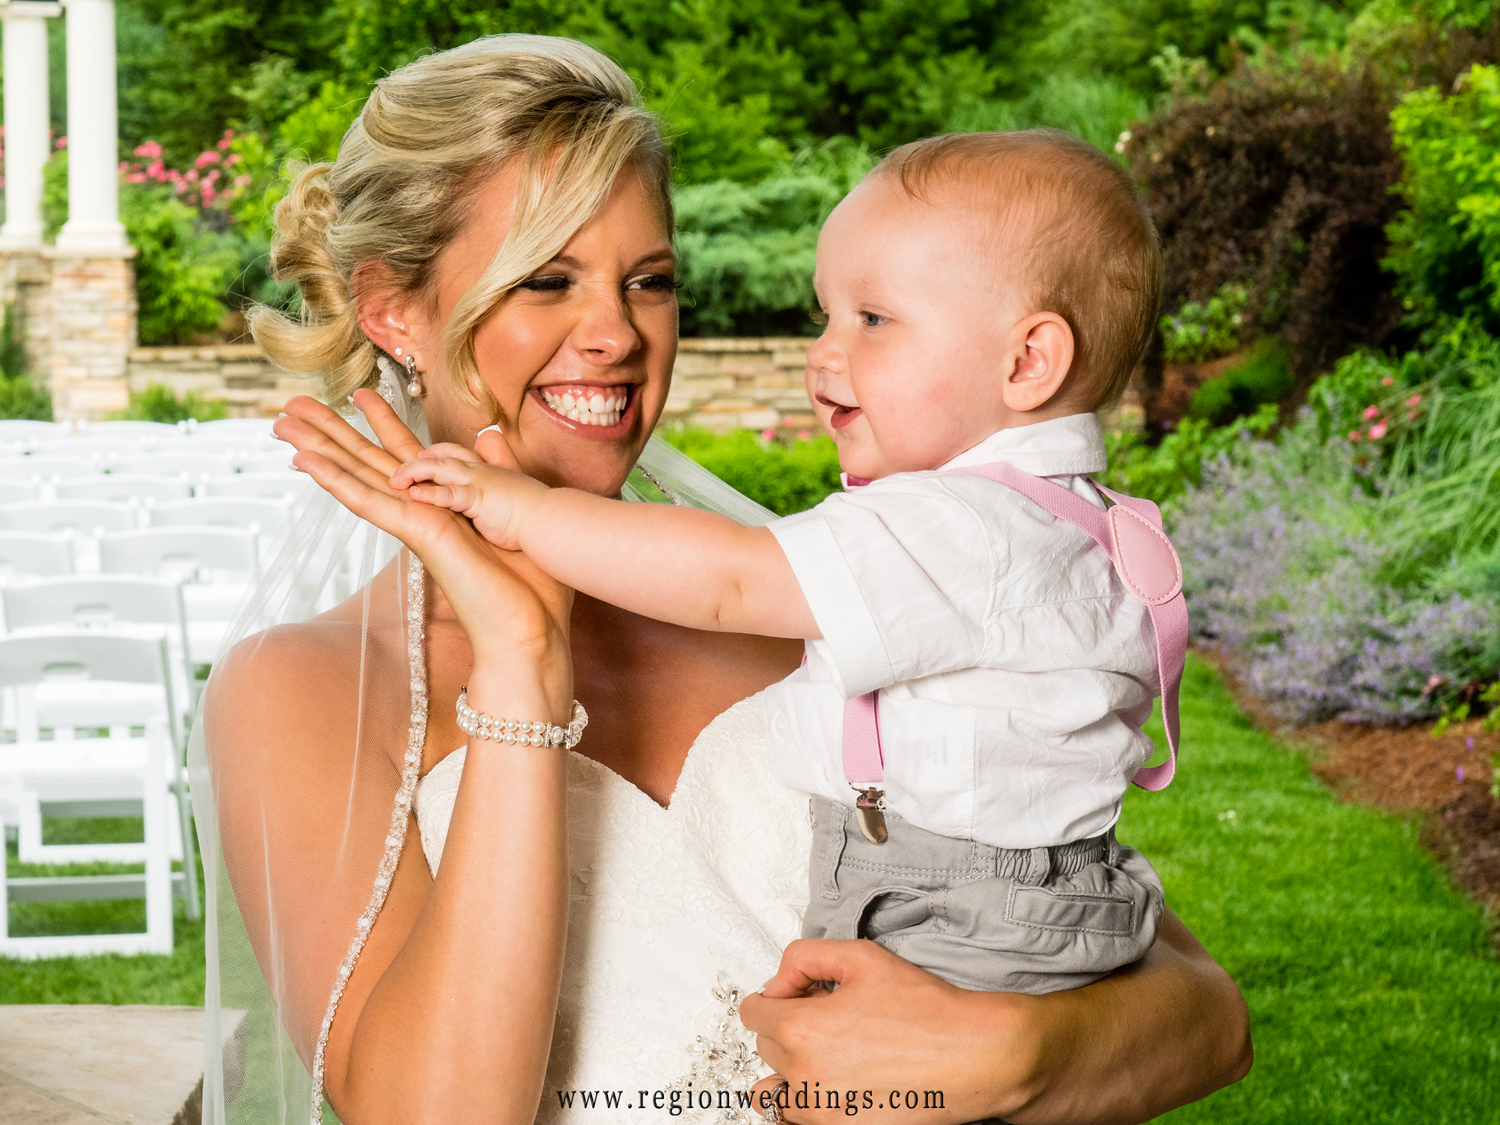 The bride high fives a little baby boy at her wedding.